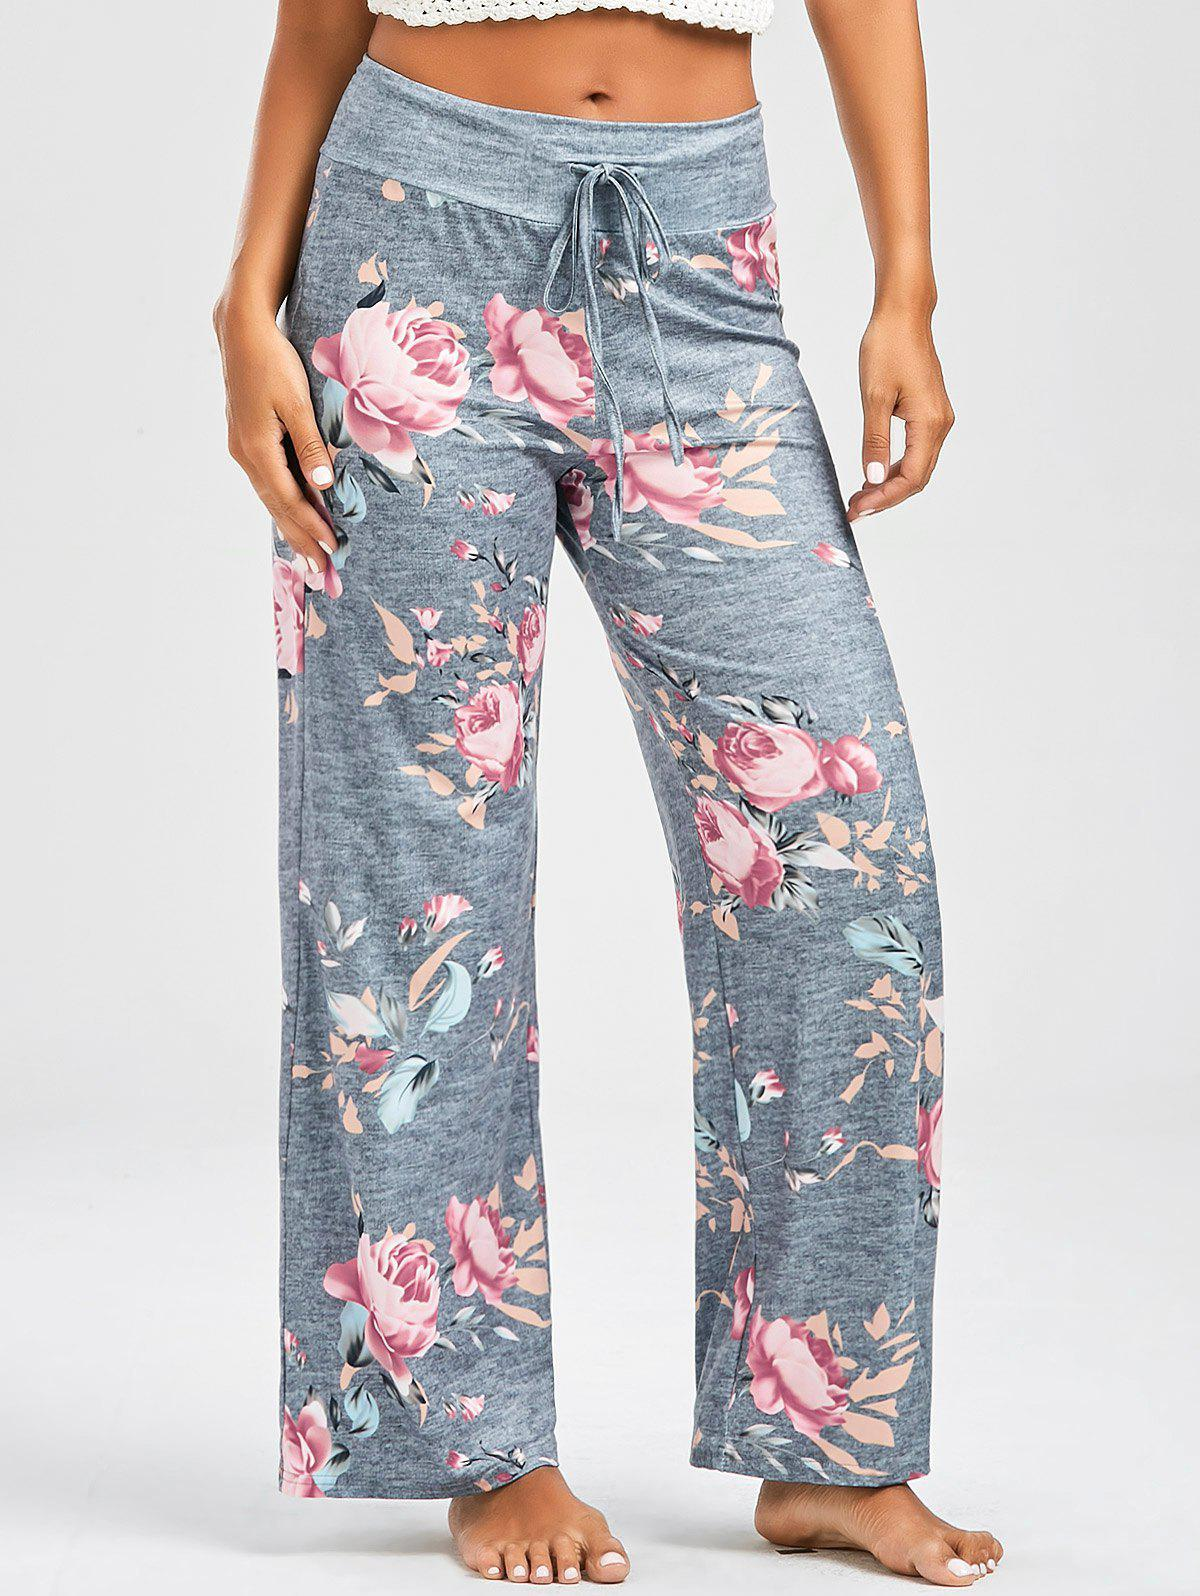 Casual Floral Print Drawstring Pants drawstring floral casual ankle length pants